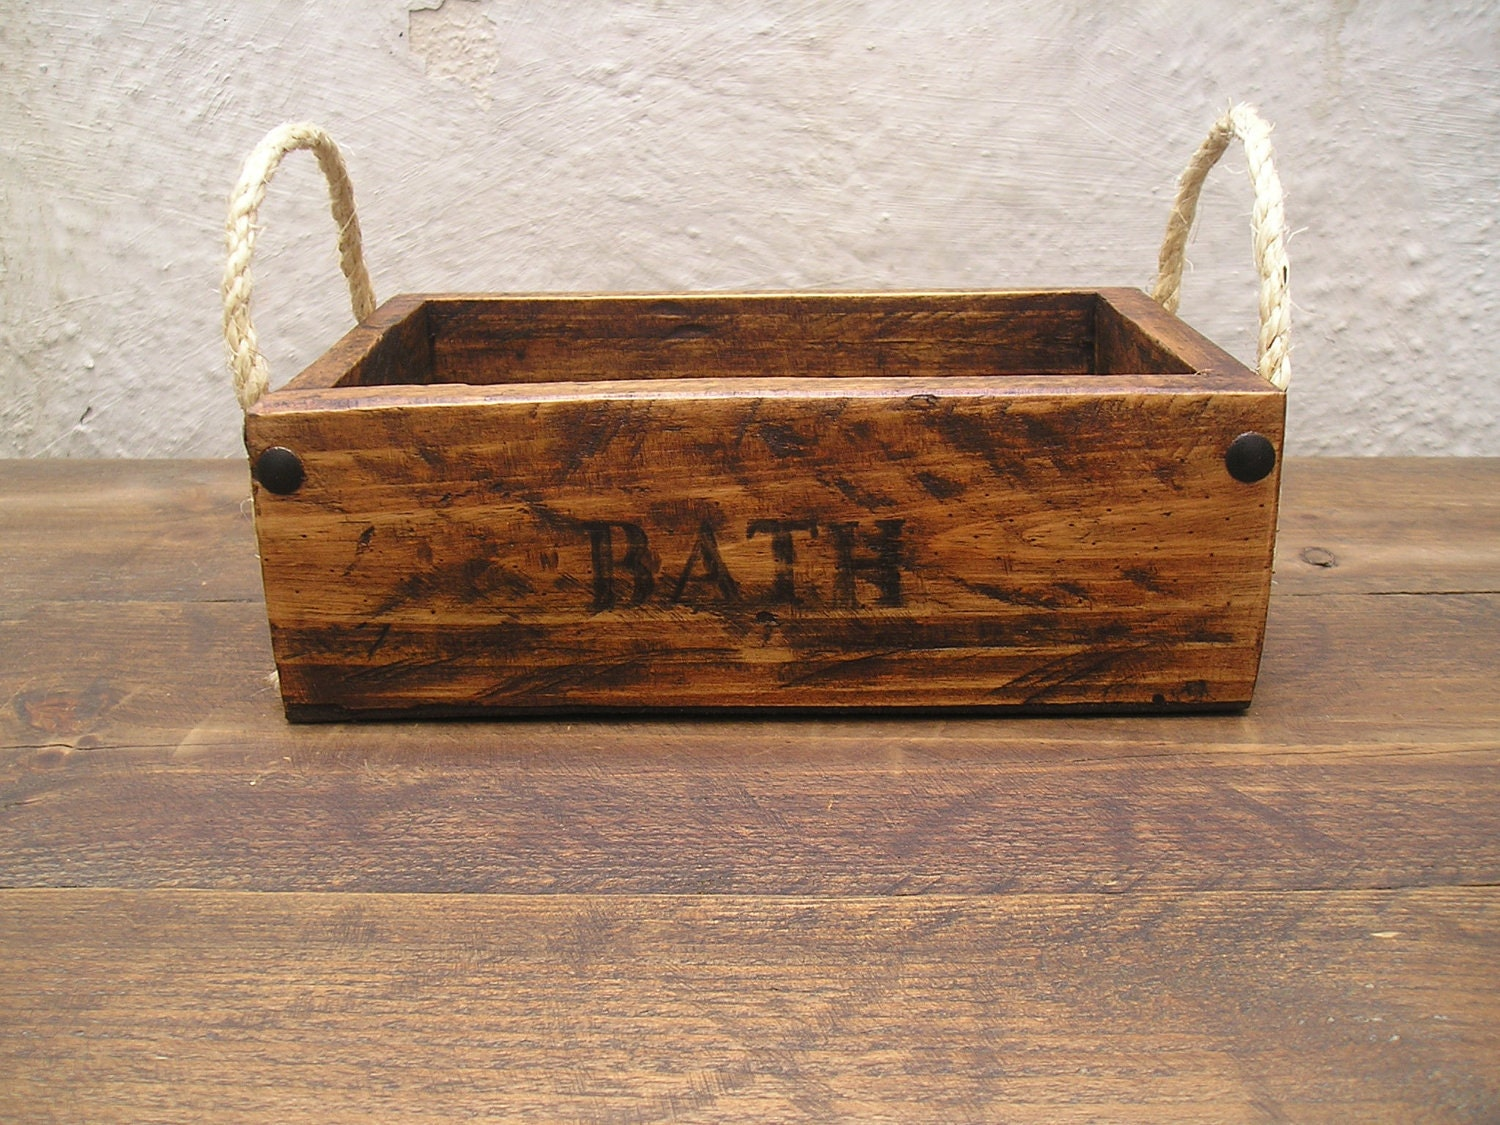 handmade rustic wooden bathroom accessories / by regalosrusticos, Bathroom decor